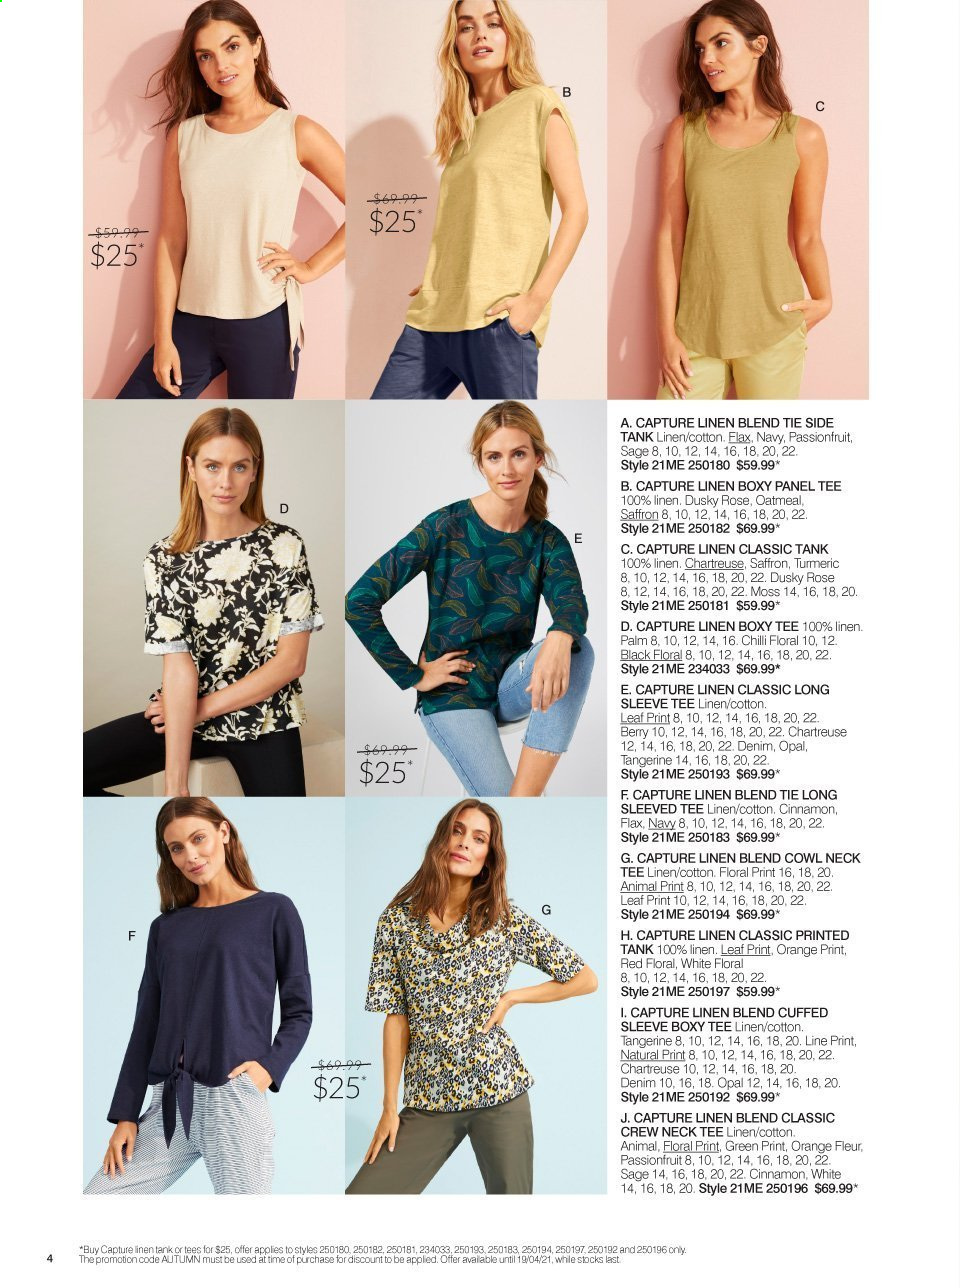 Ezibuy mailer - 09.03.2021 - 19.04.2021 - Sales products - jeans, long-sleeve tee, tee, tie. Page 4.